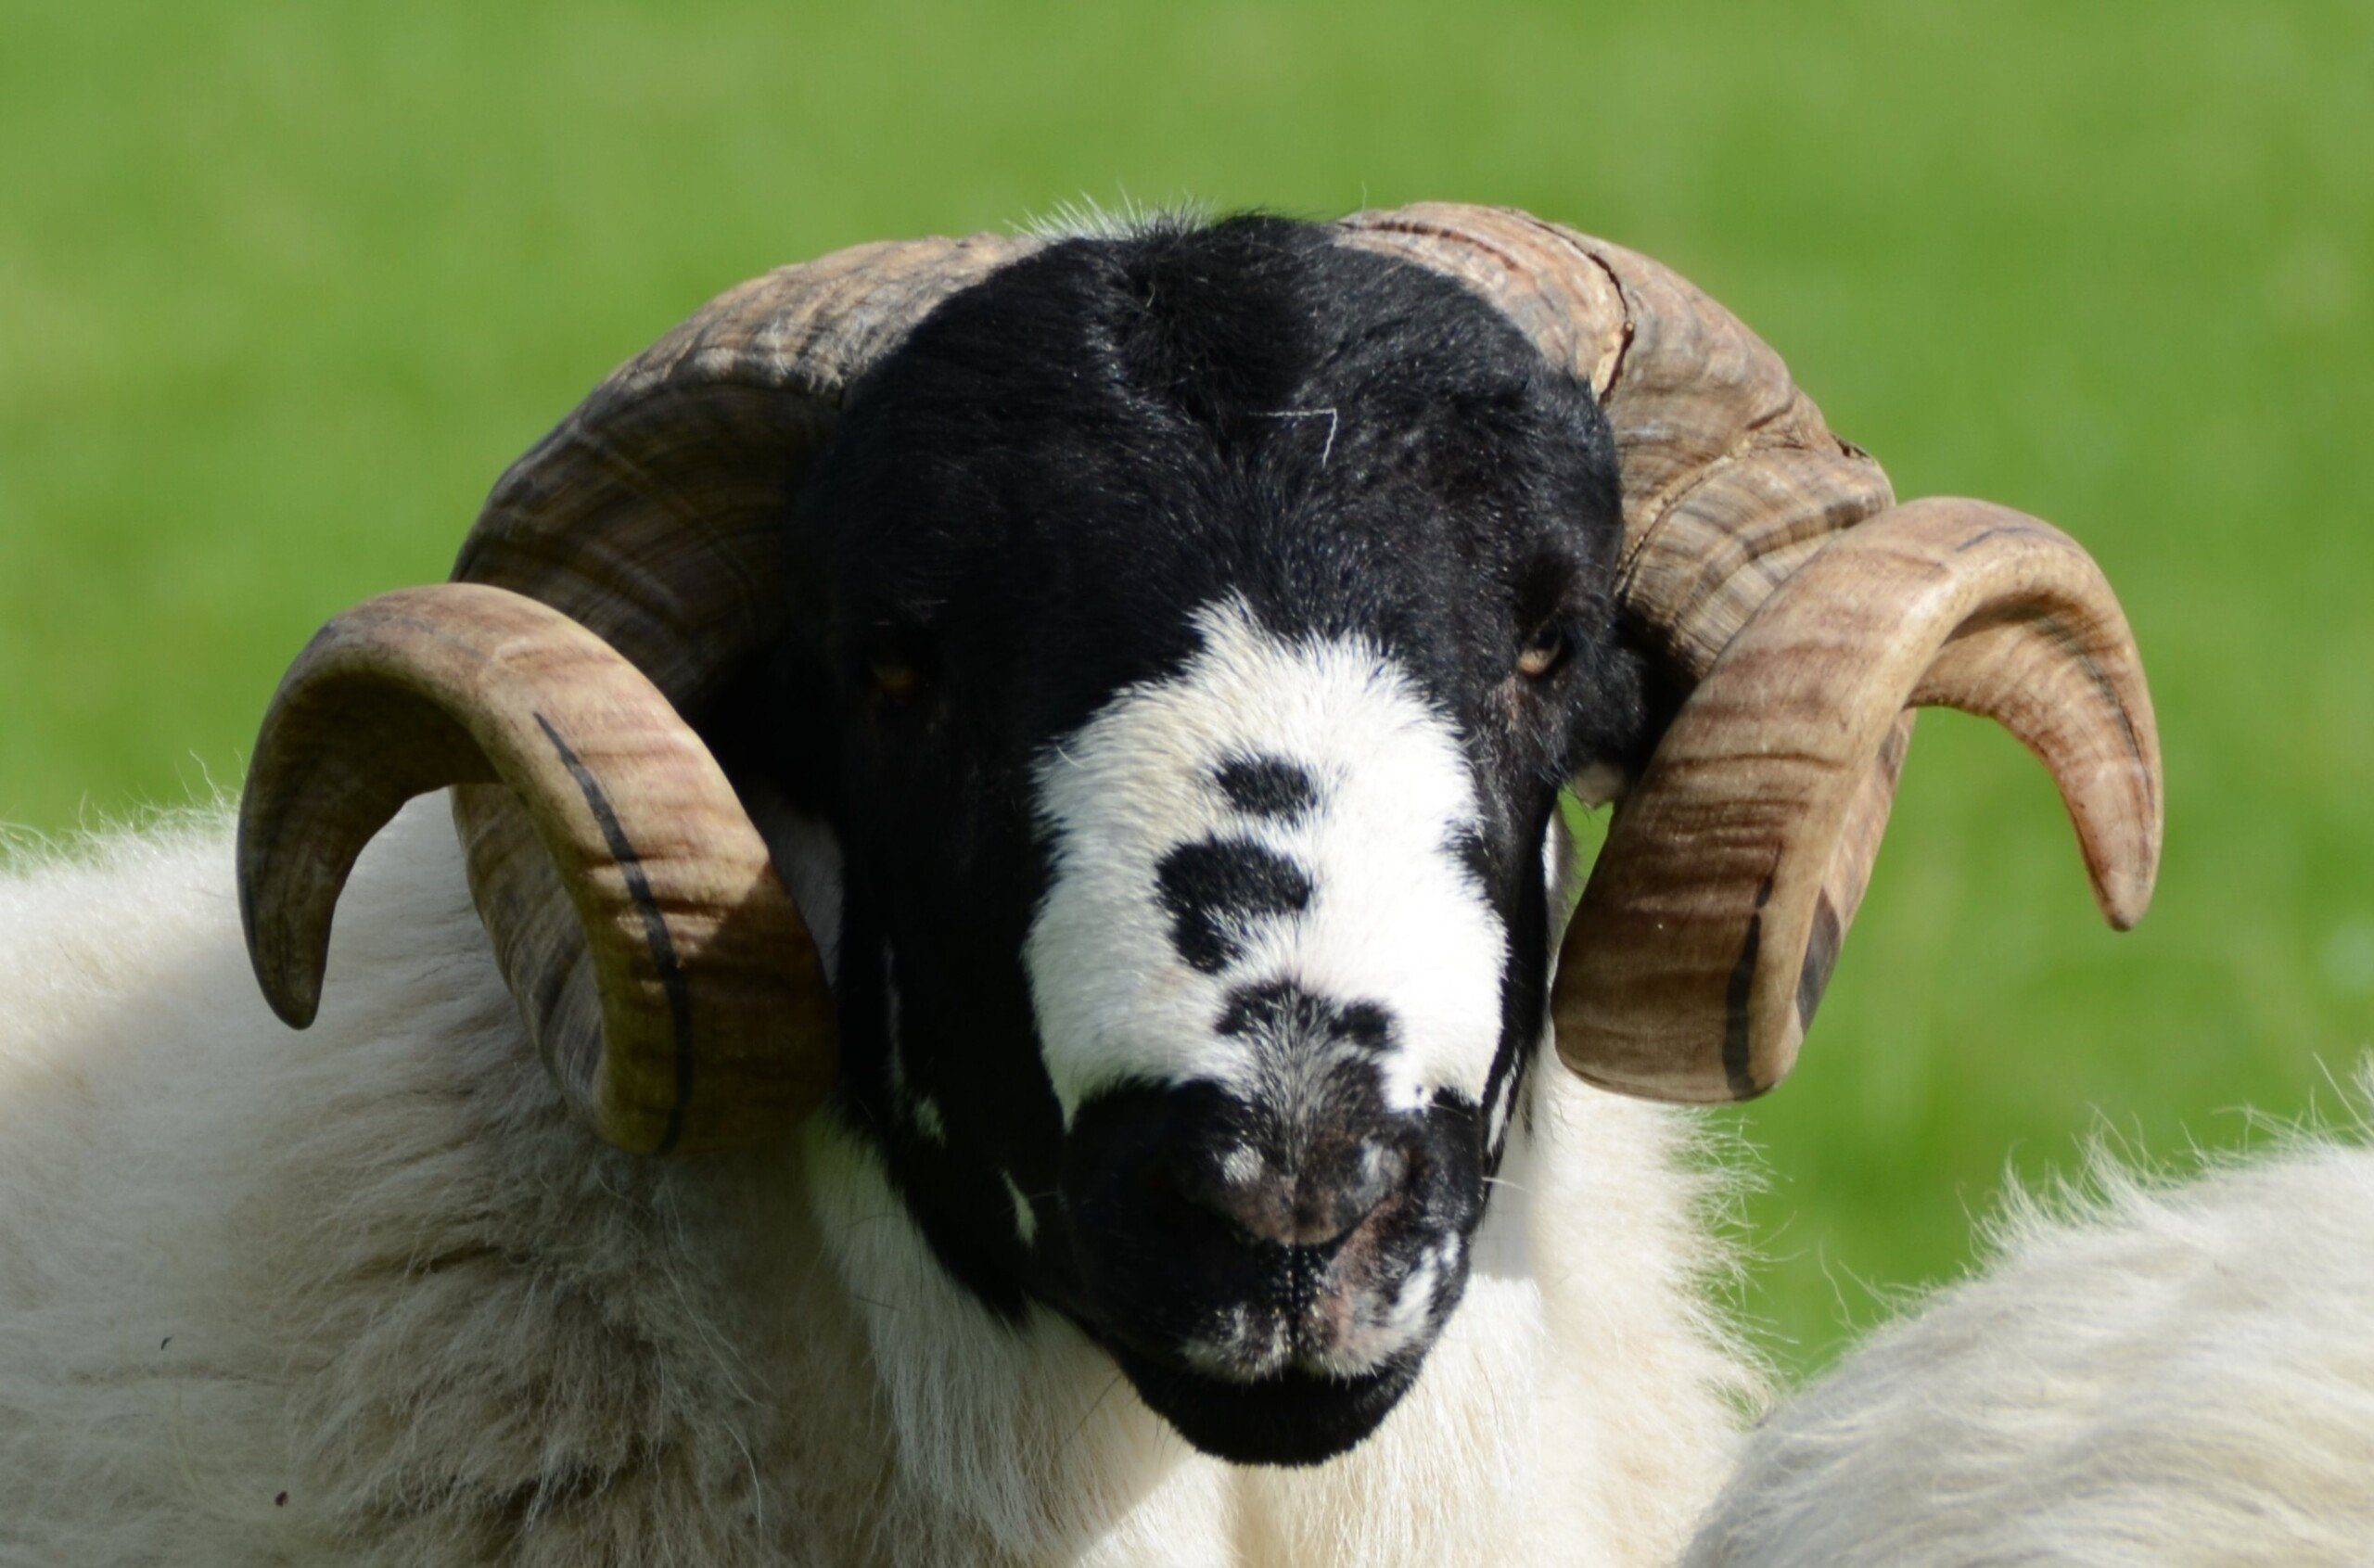 Close-up of sheep with impressive curly horns